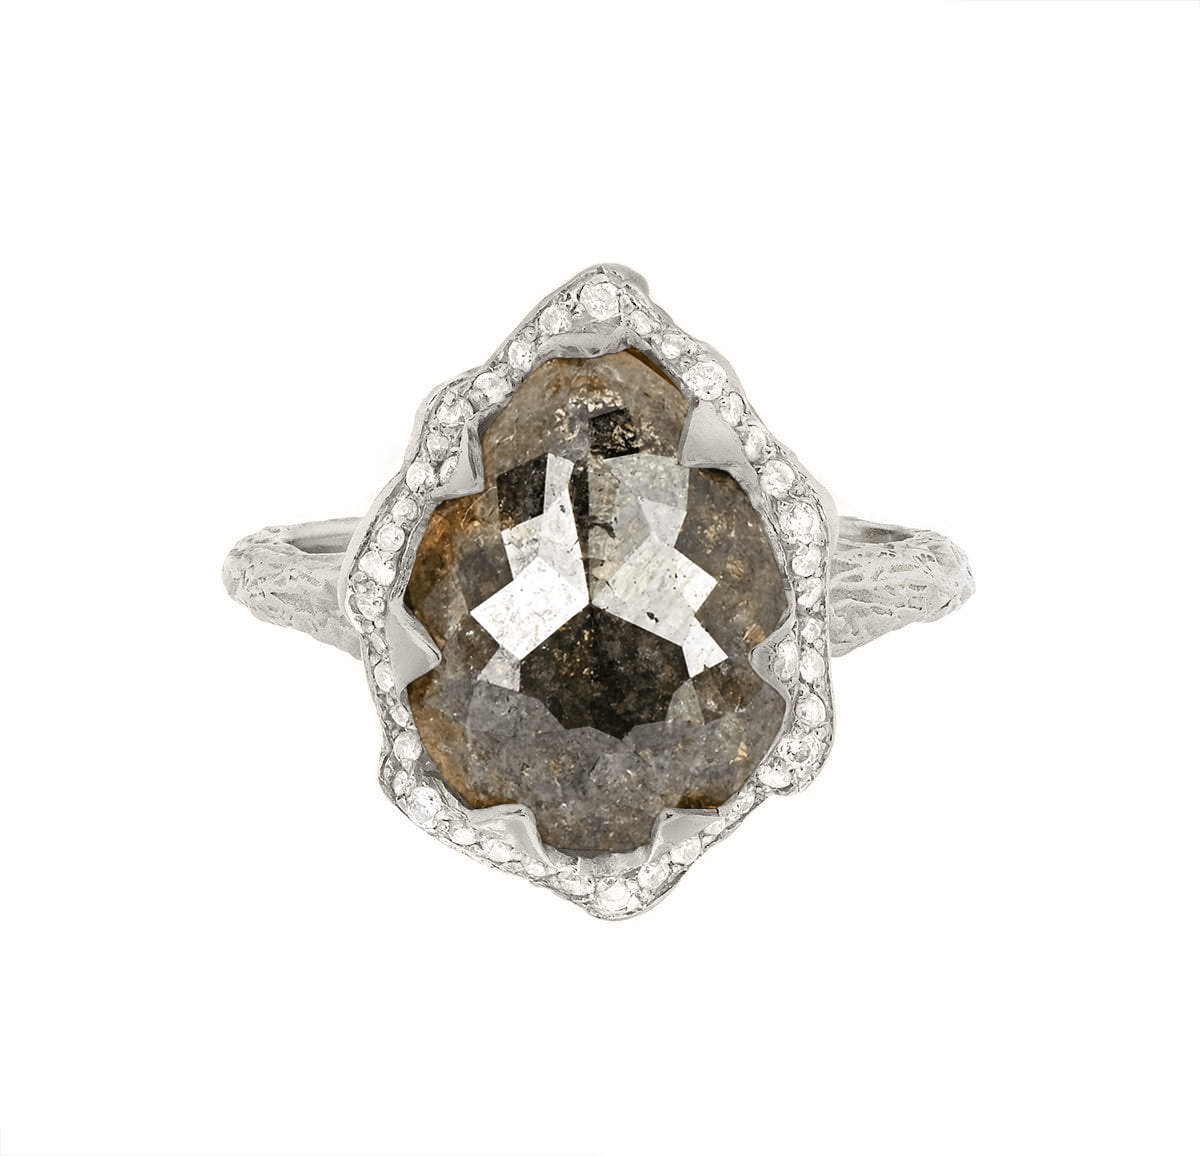 Queen Water Drop Grey Diamond Ring with Full Pavé Diamond Halo